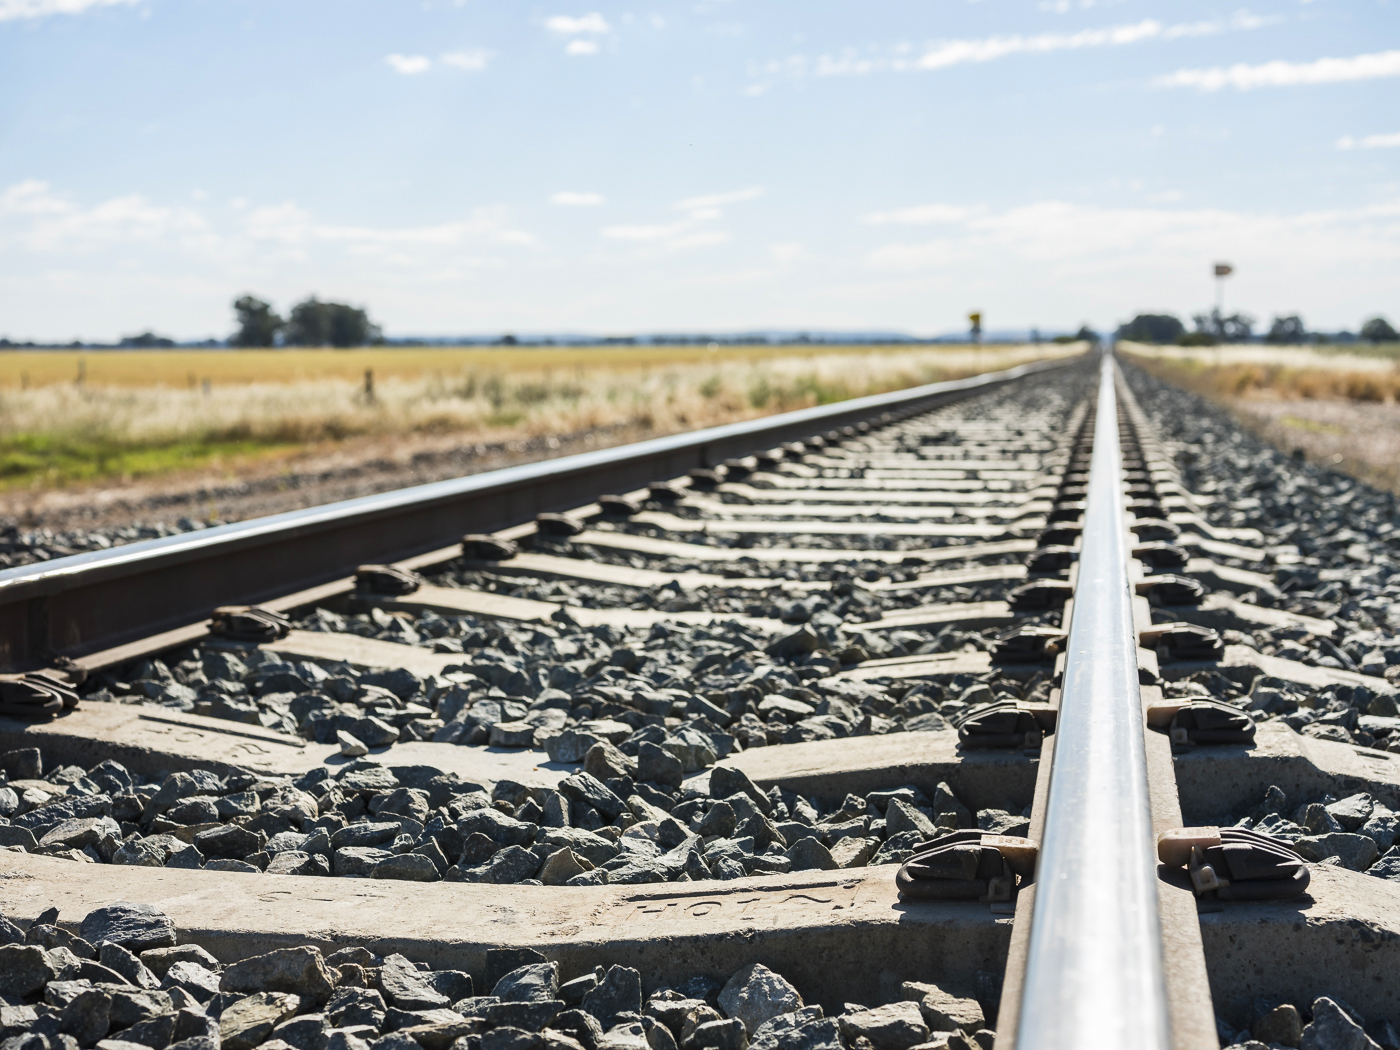 Close up of train tracks in a rural location, freight and logistics, transport, rail line, regional NSW